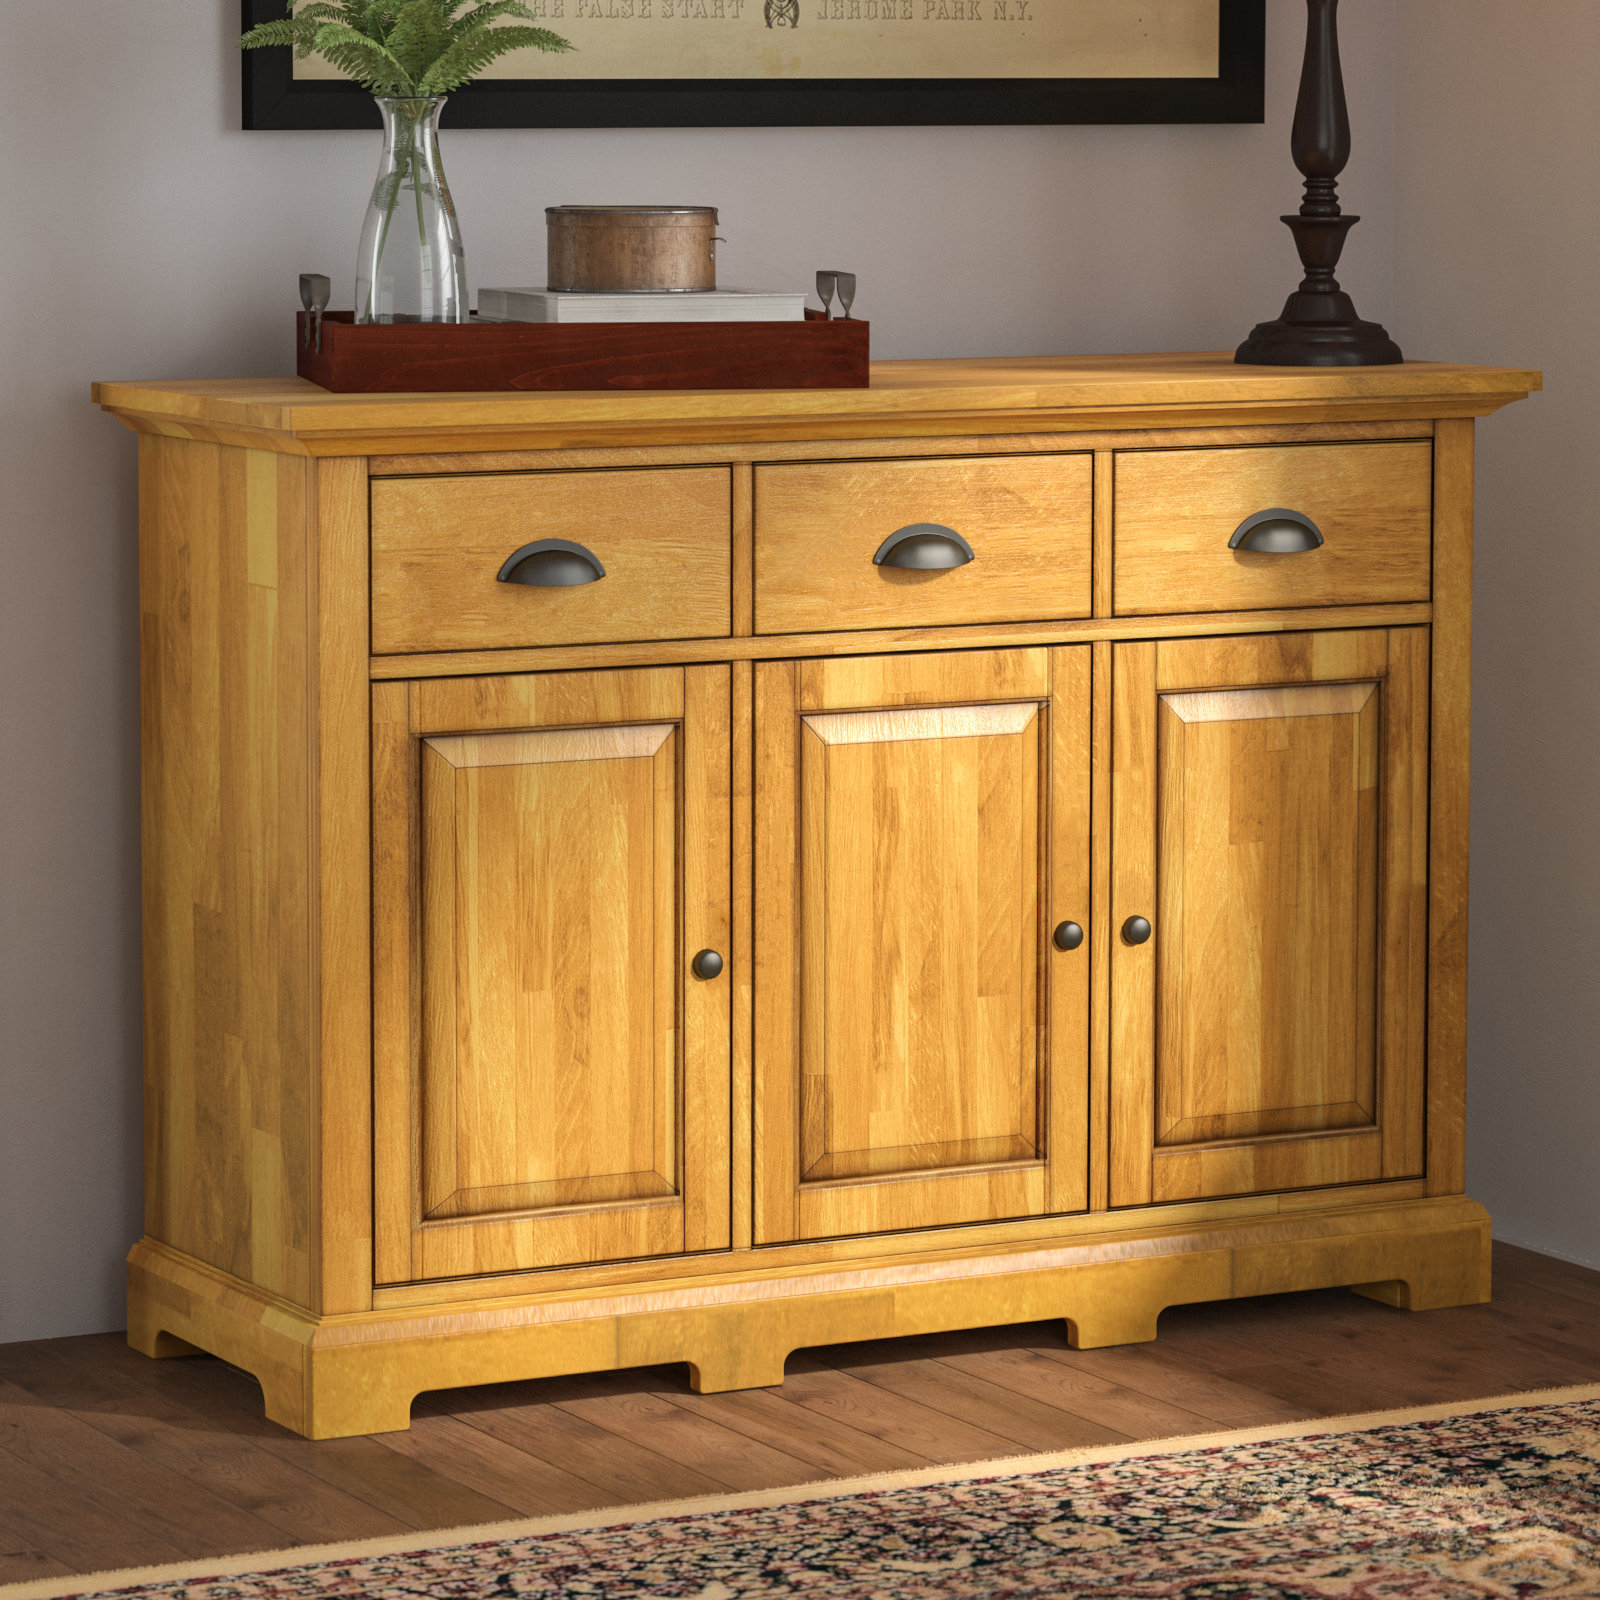 Asian Sideboard | Wayfair Pertaining To Most Popular Seven Seas Asian Sideboards (View 7 of 20)